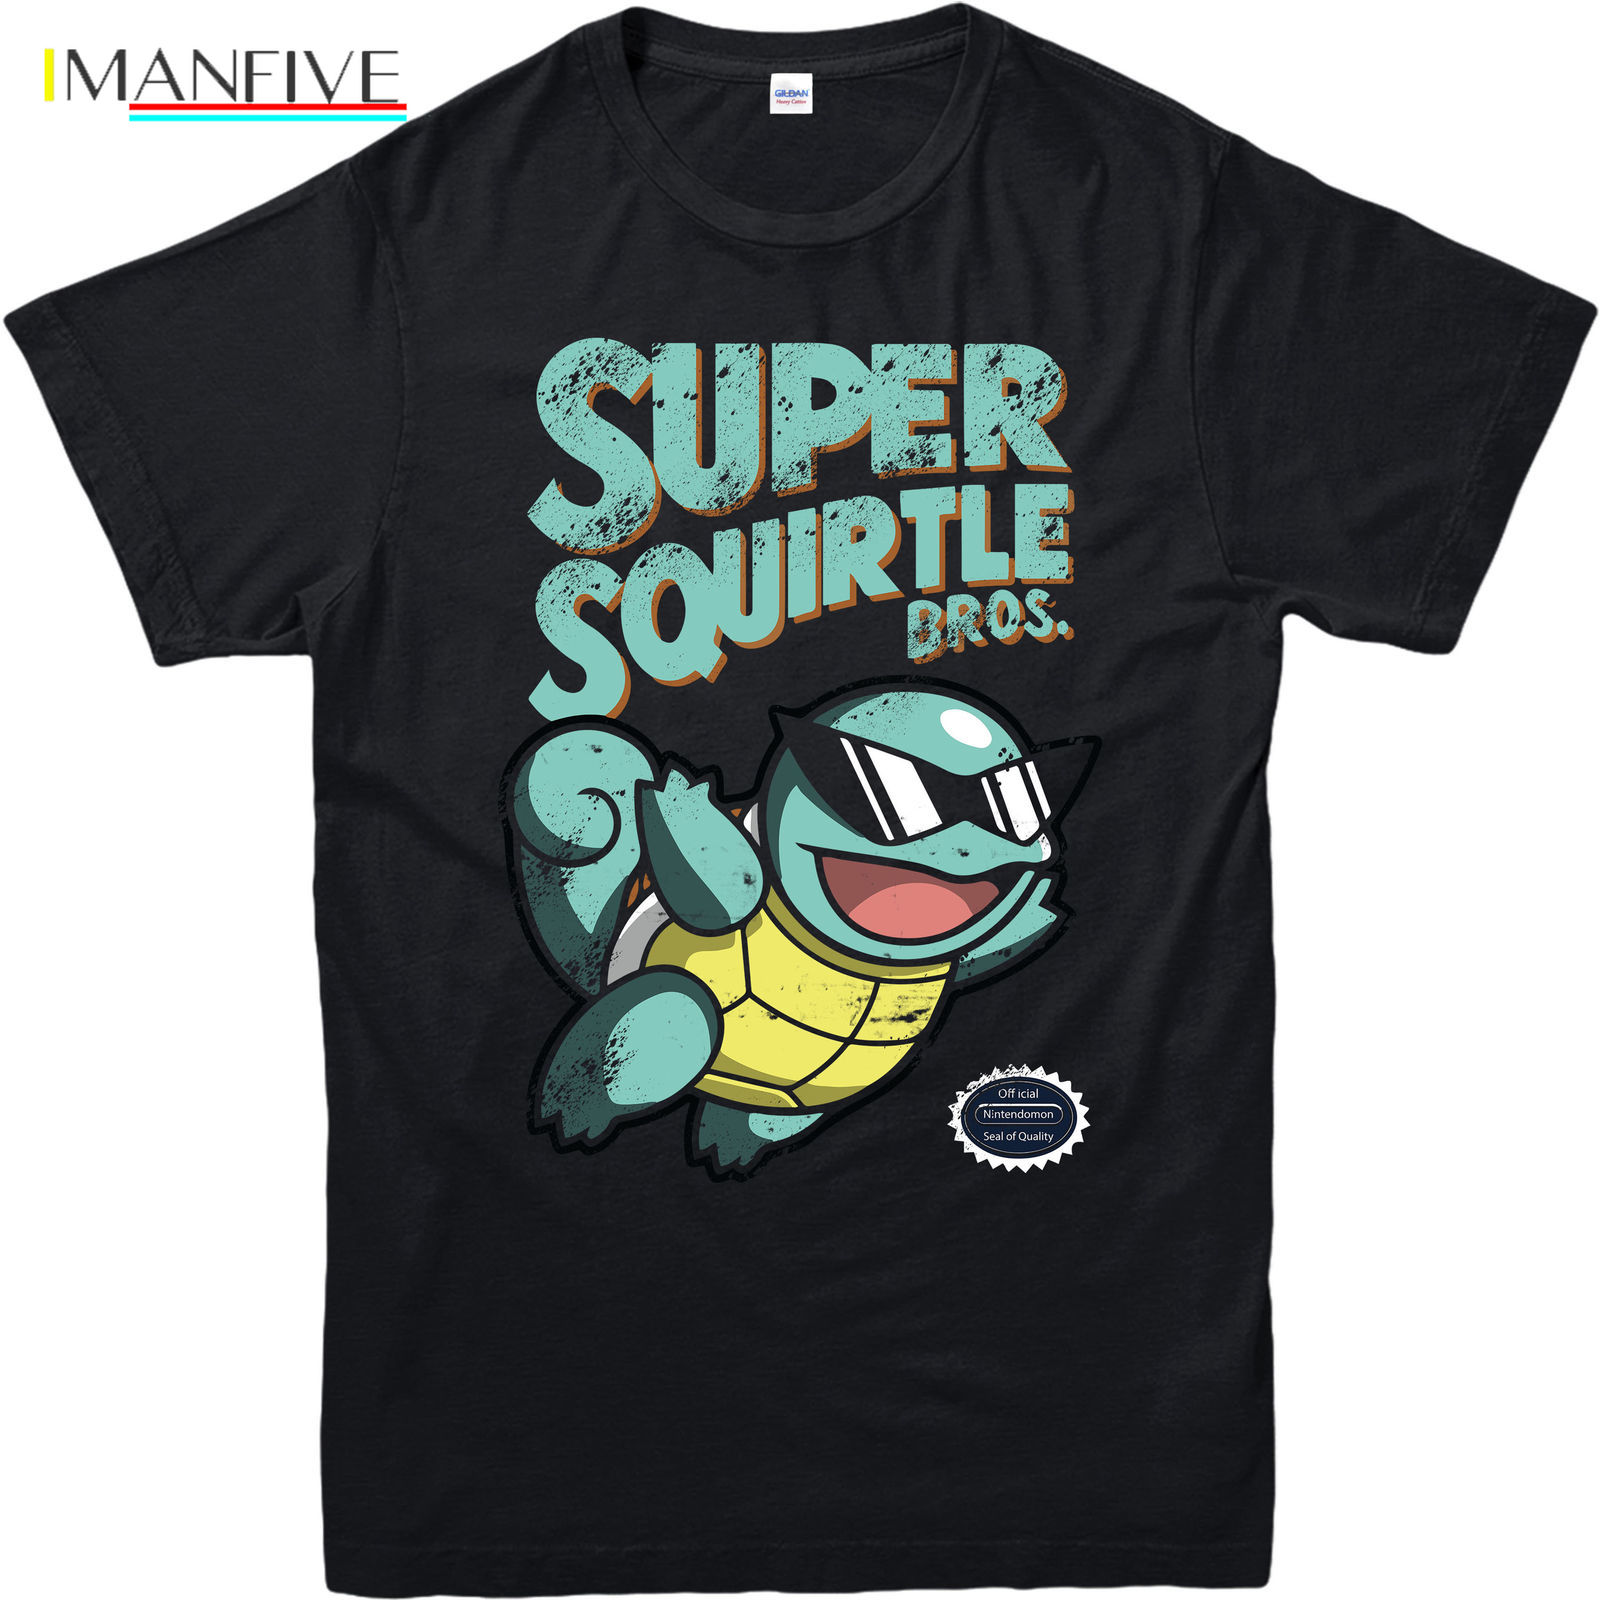 Pokemon T-Shirt,Super Squirtle Mario Bros Spoof,Adult and kids Sizes 100% Cotton Straight O-Neck Short Sleeve Chinese Style